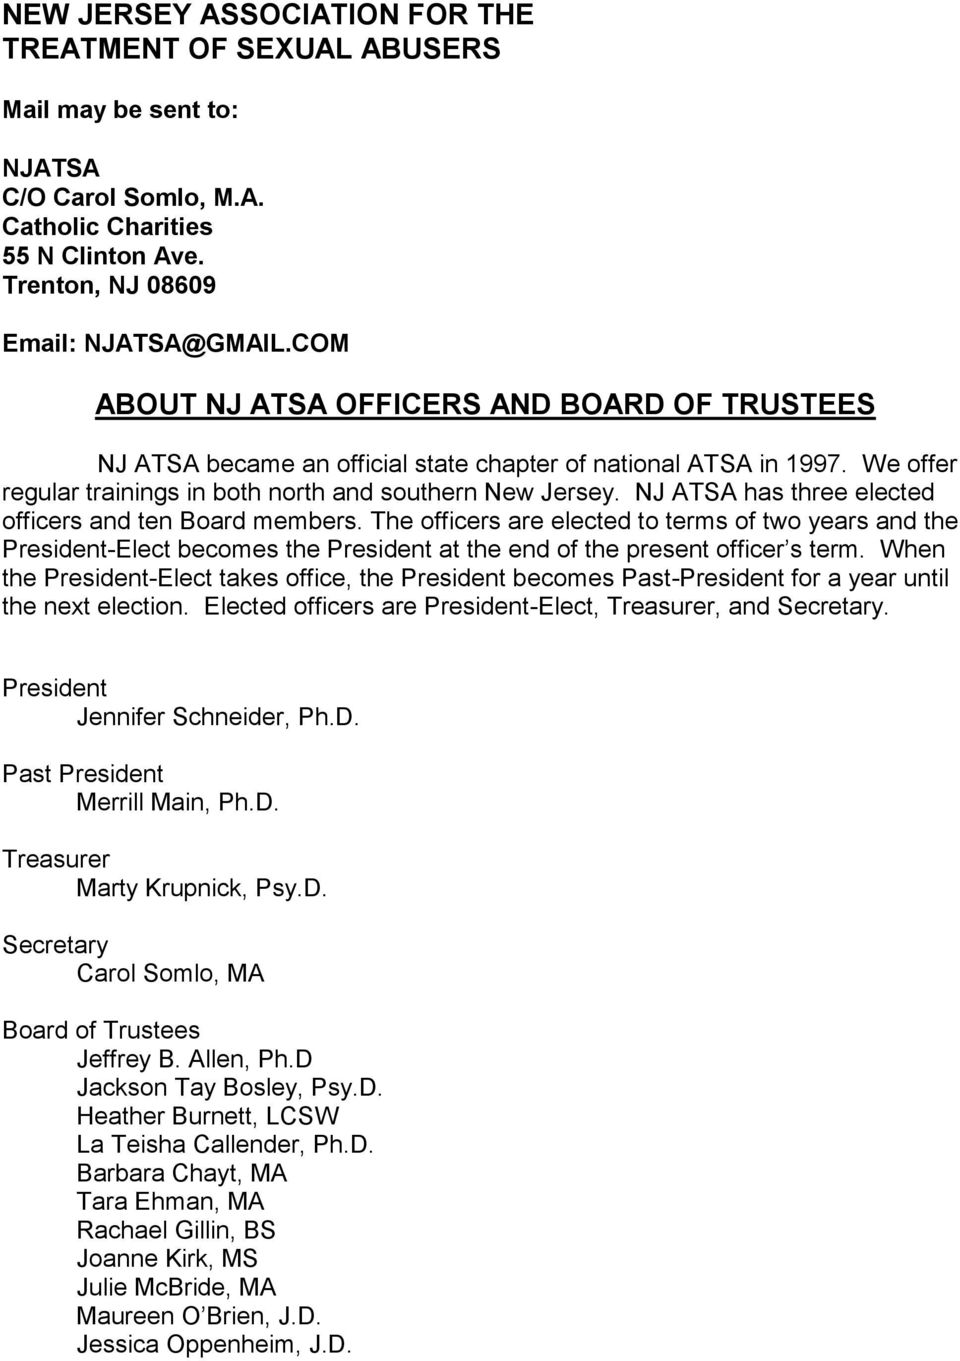 NJ ATSA has three elected officers and ten Board members. The officers are elected to terms of two years and the President-Elect becomes the President at the end of the present officer s term.